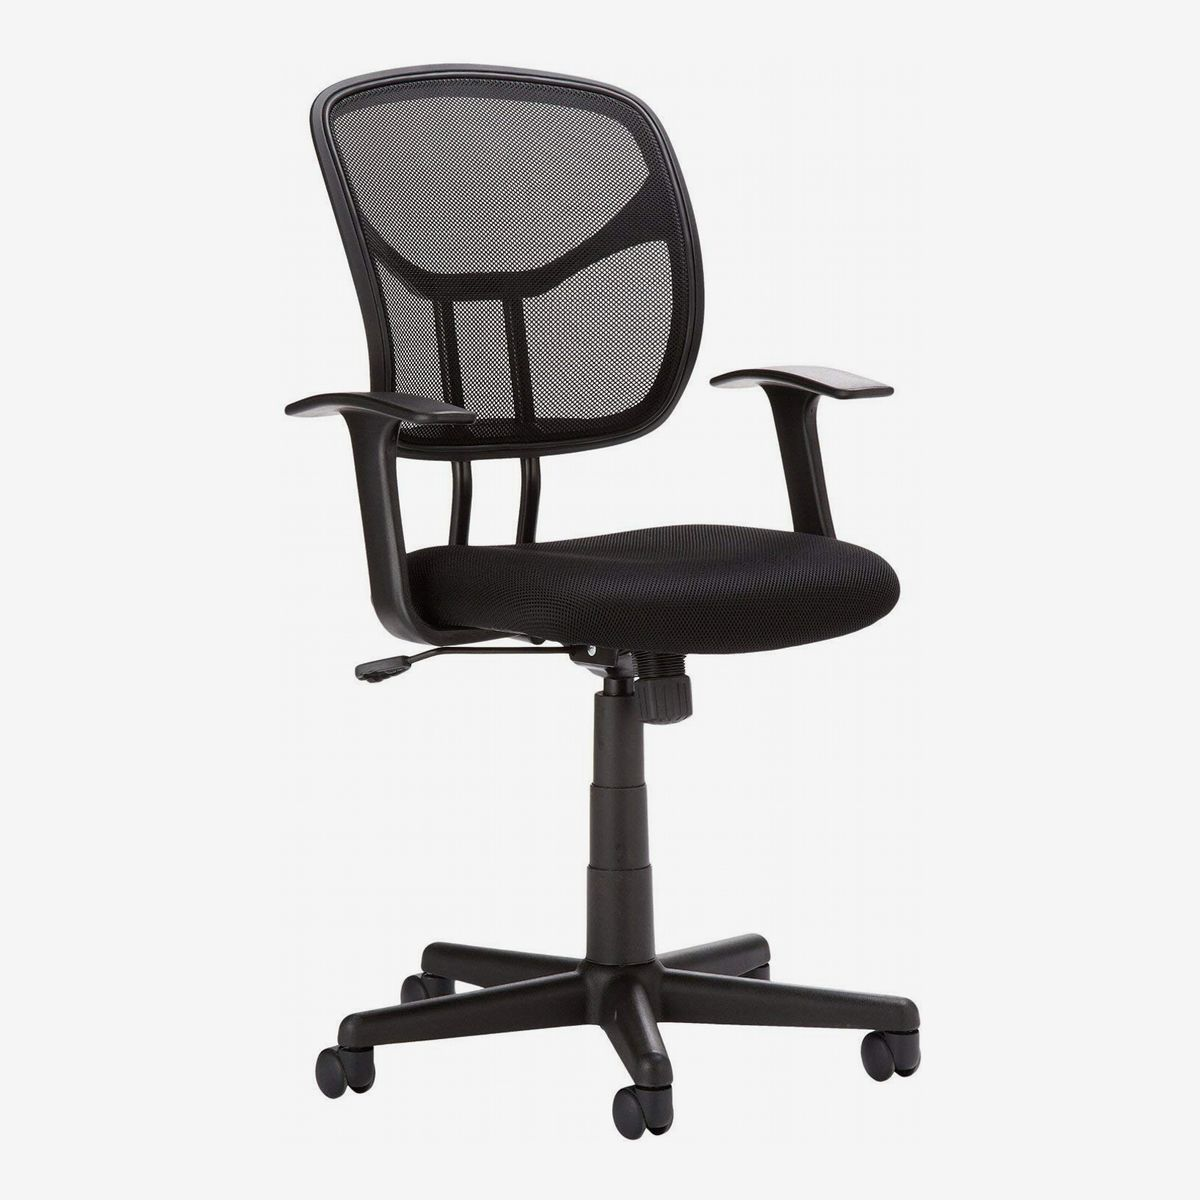 46 Best Office Chairs and Home-Office Chairs 46  The Strategist